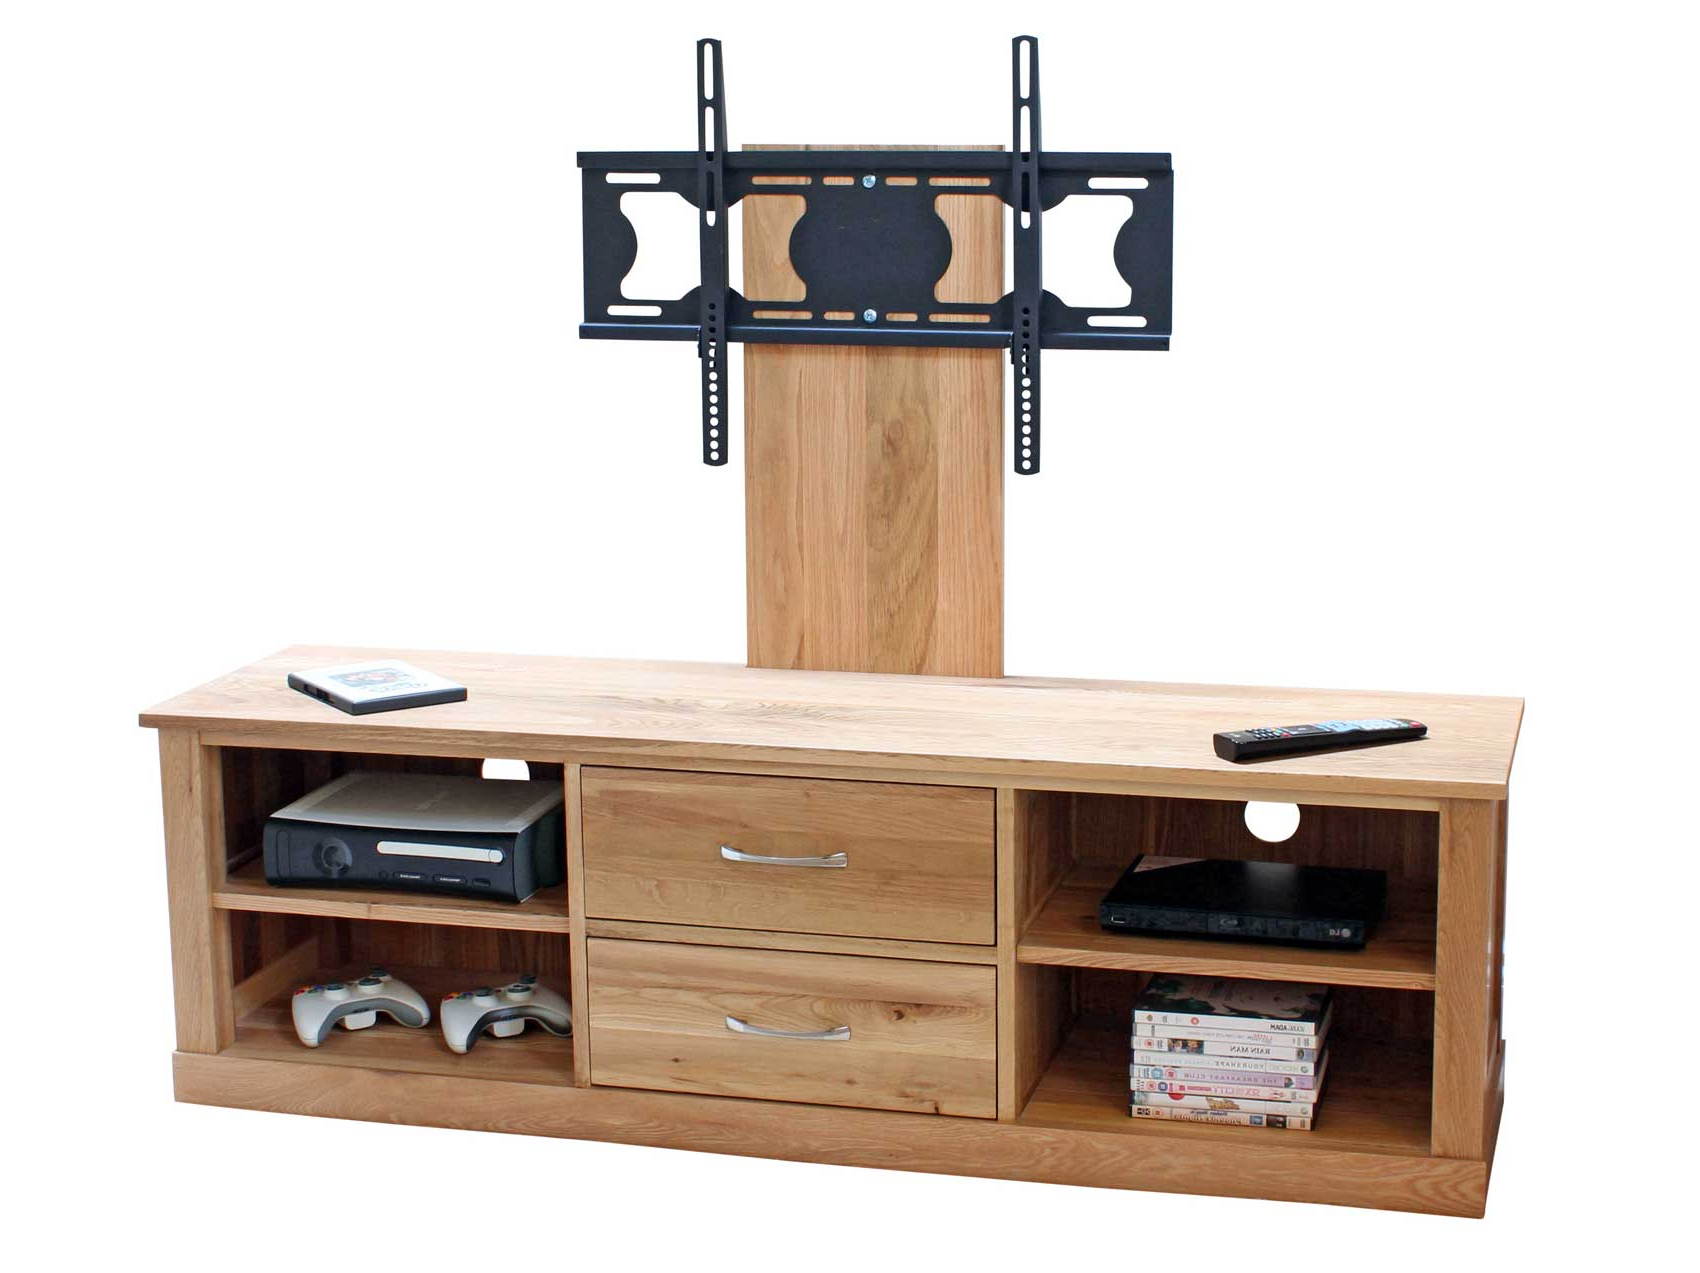 Homesfeed Pertaining To Unique Tv Stands For Flat Screens (View 2 of 20)